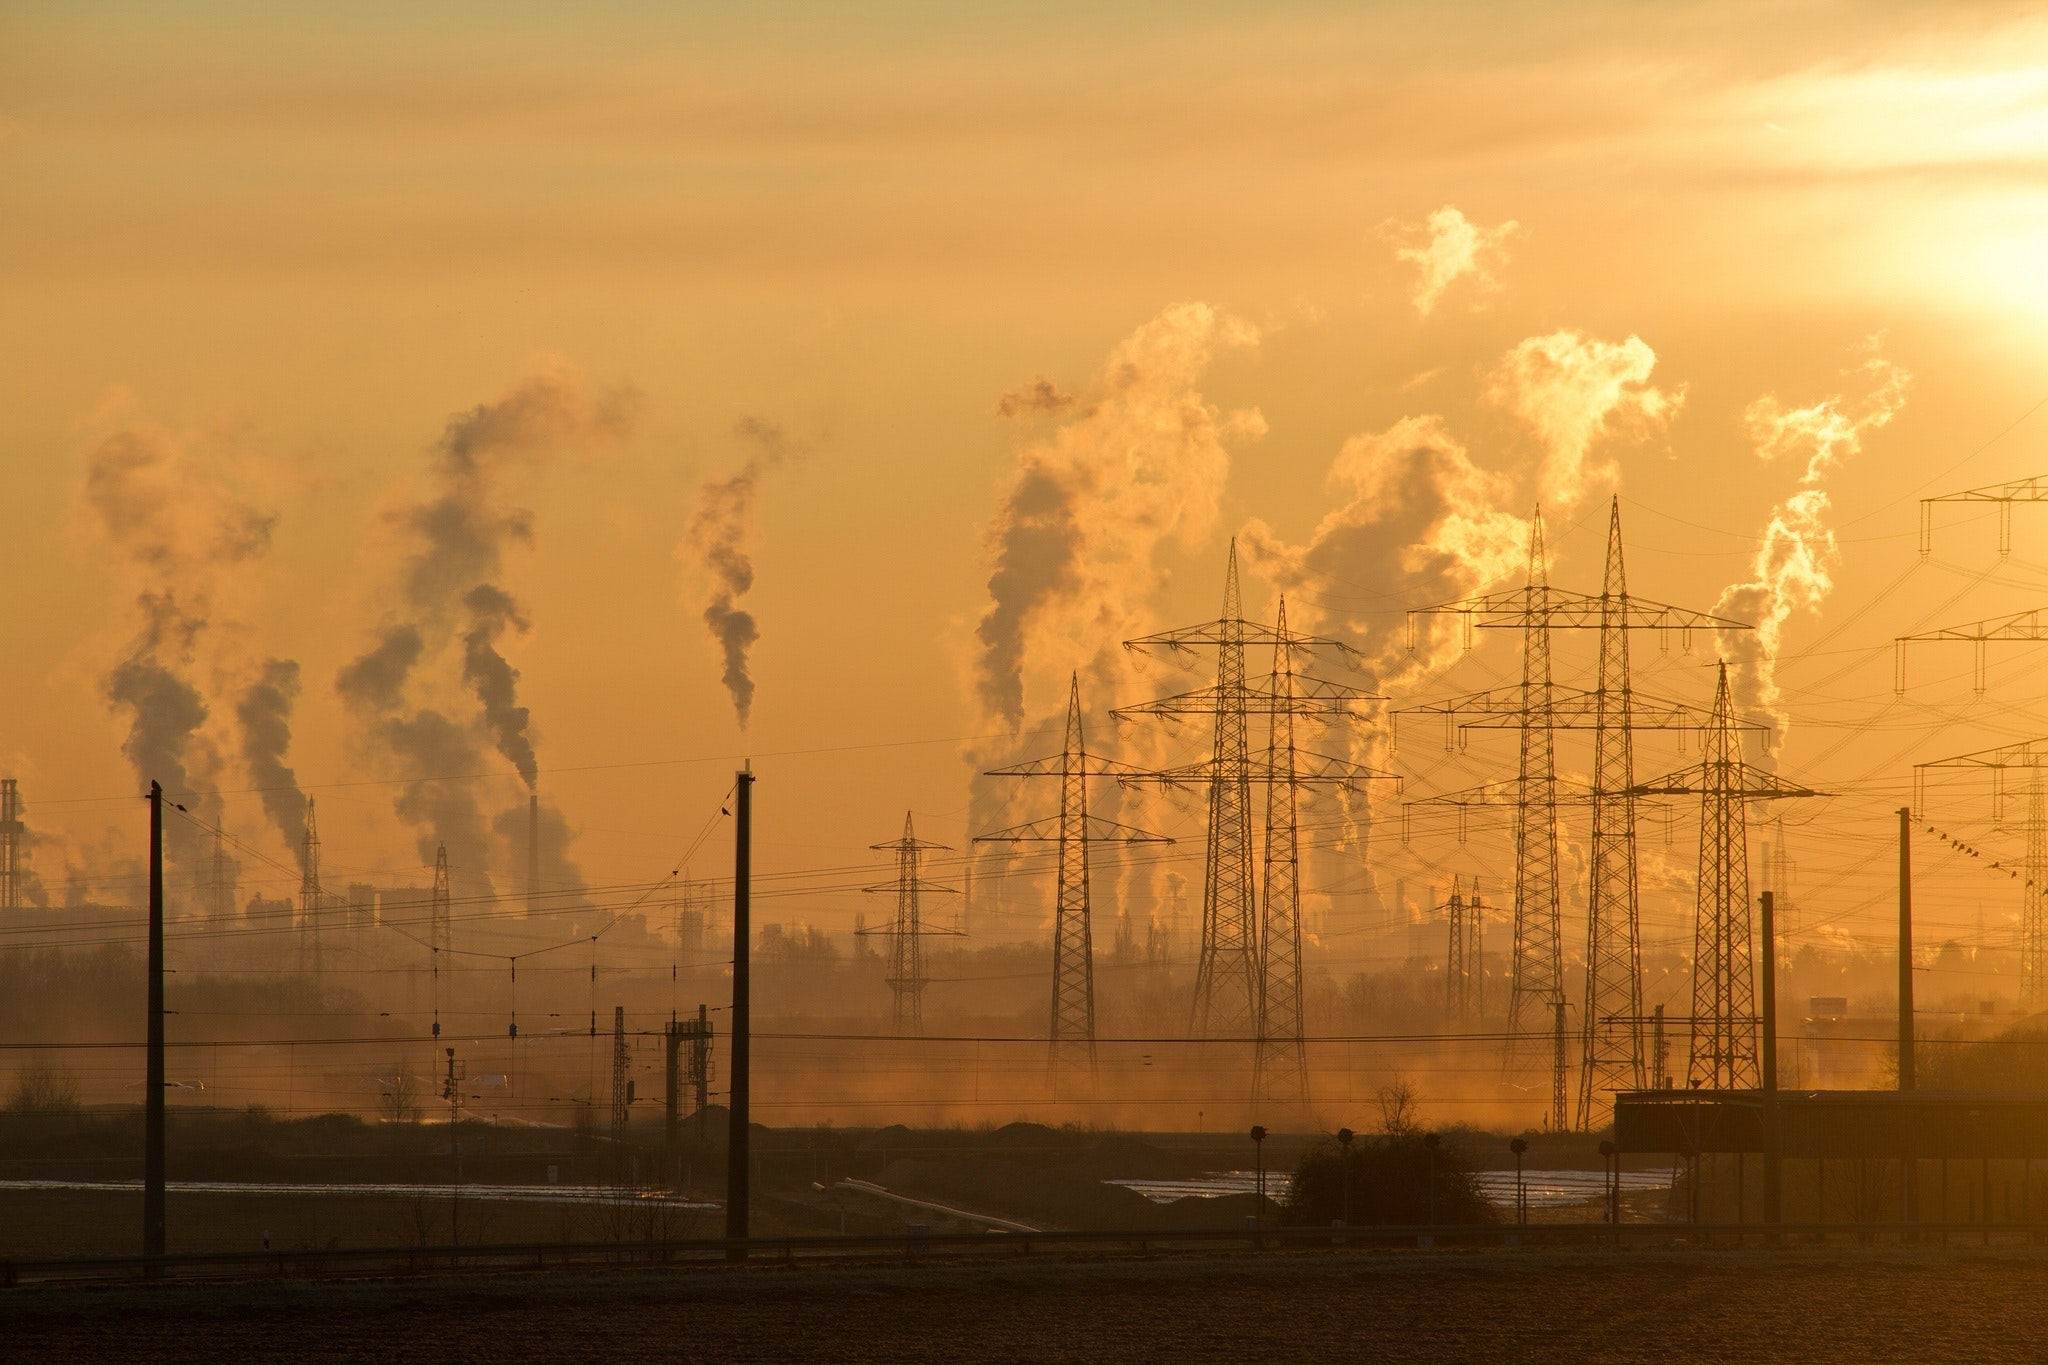 air-pollution-climate-change-dawn-221012.jpg